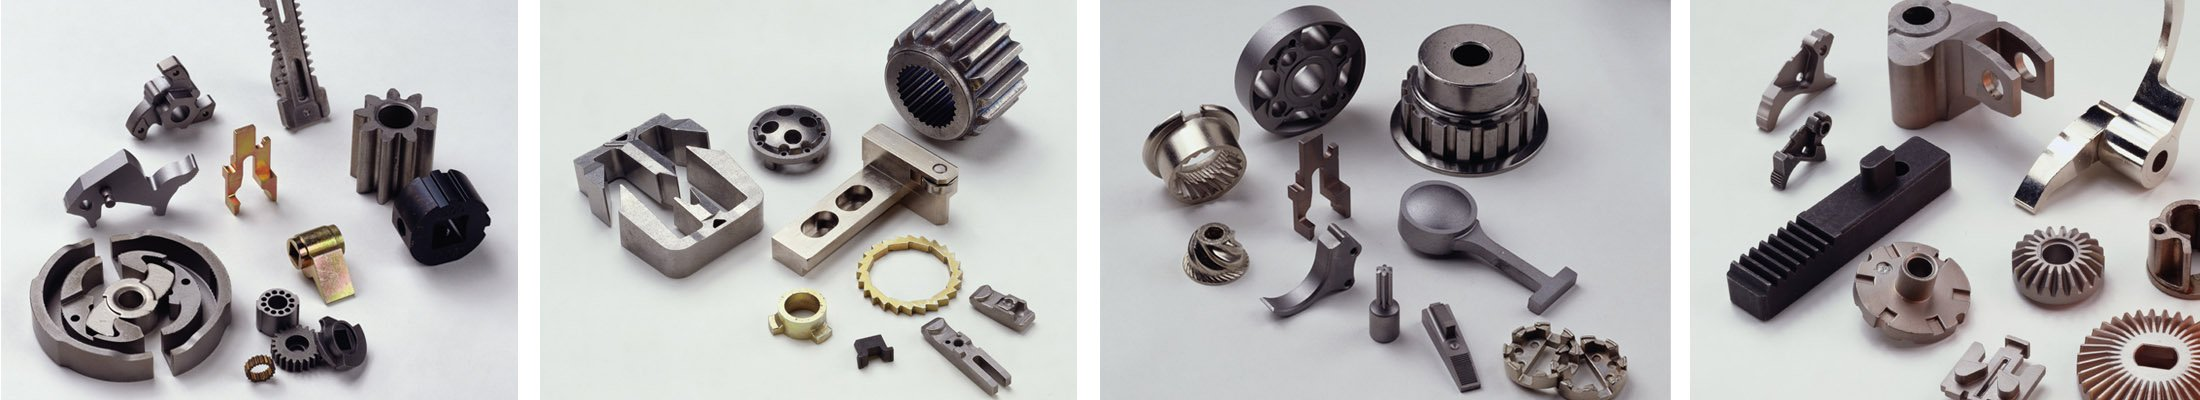 pacific-sintered-metal-parts.jpg